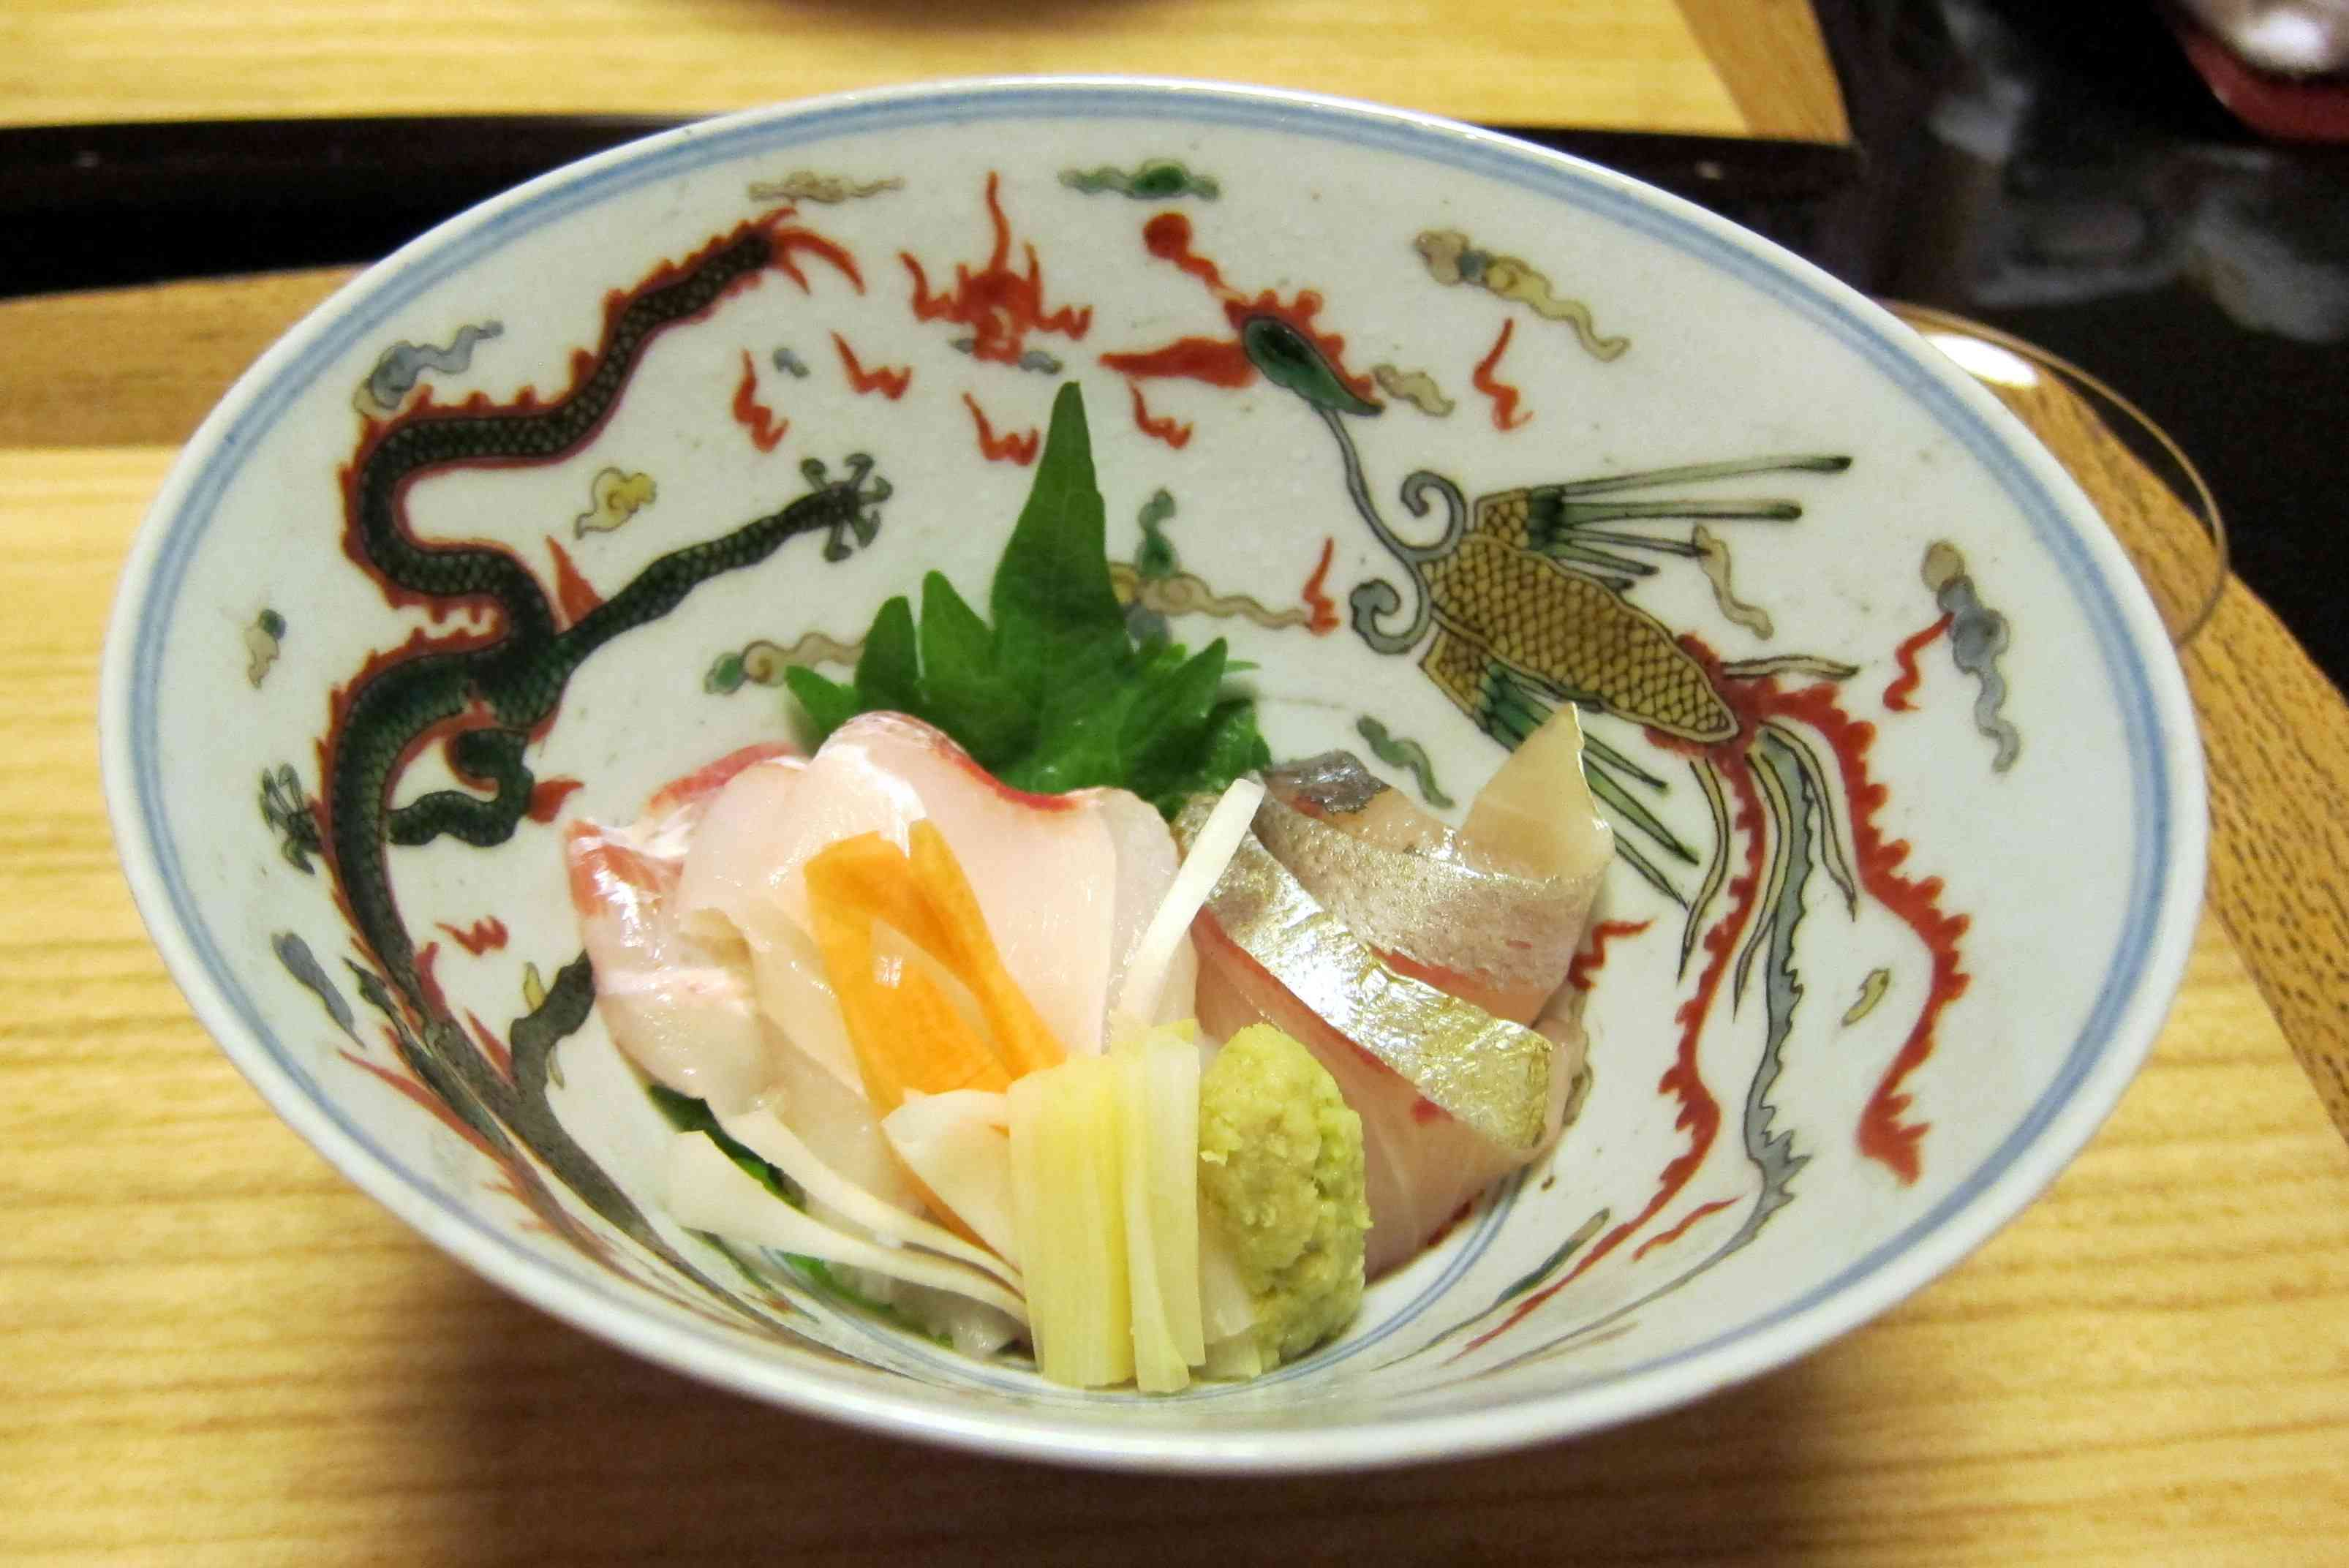 Sashimi and wasabi in a painted bowl. It's one of many kaiseki courses